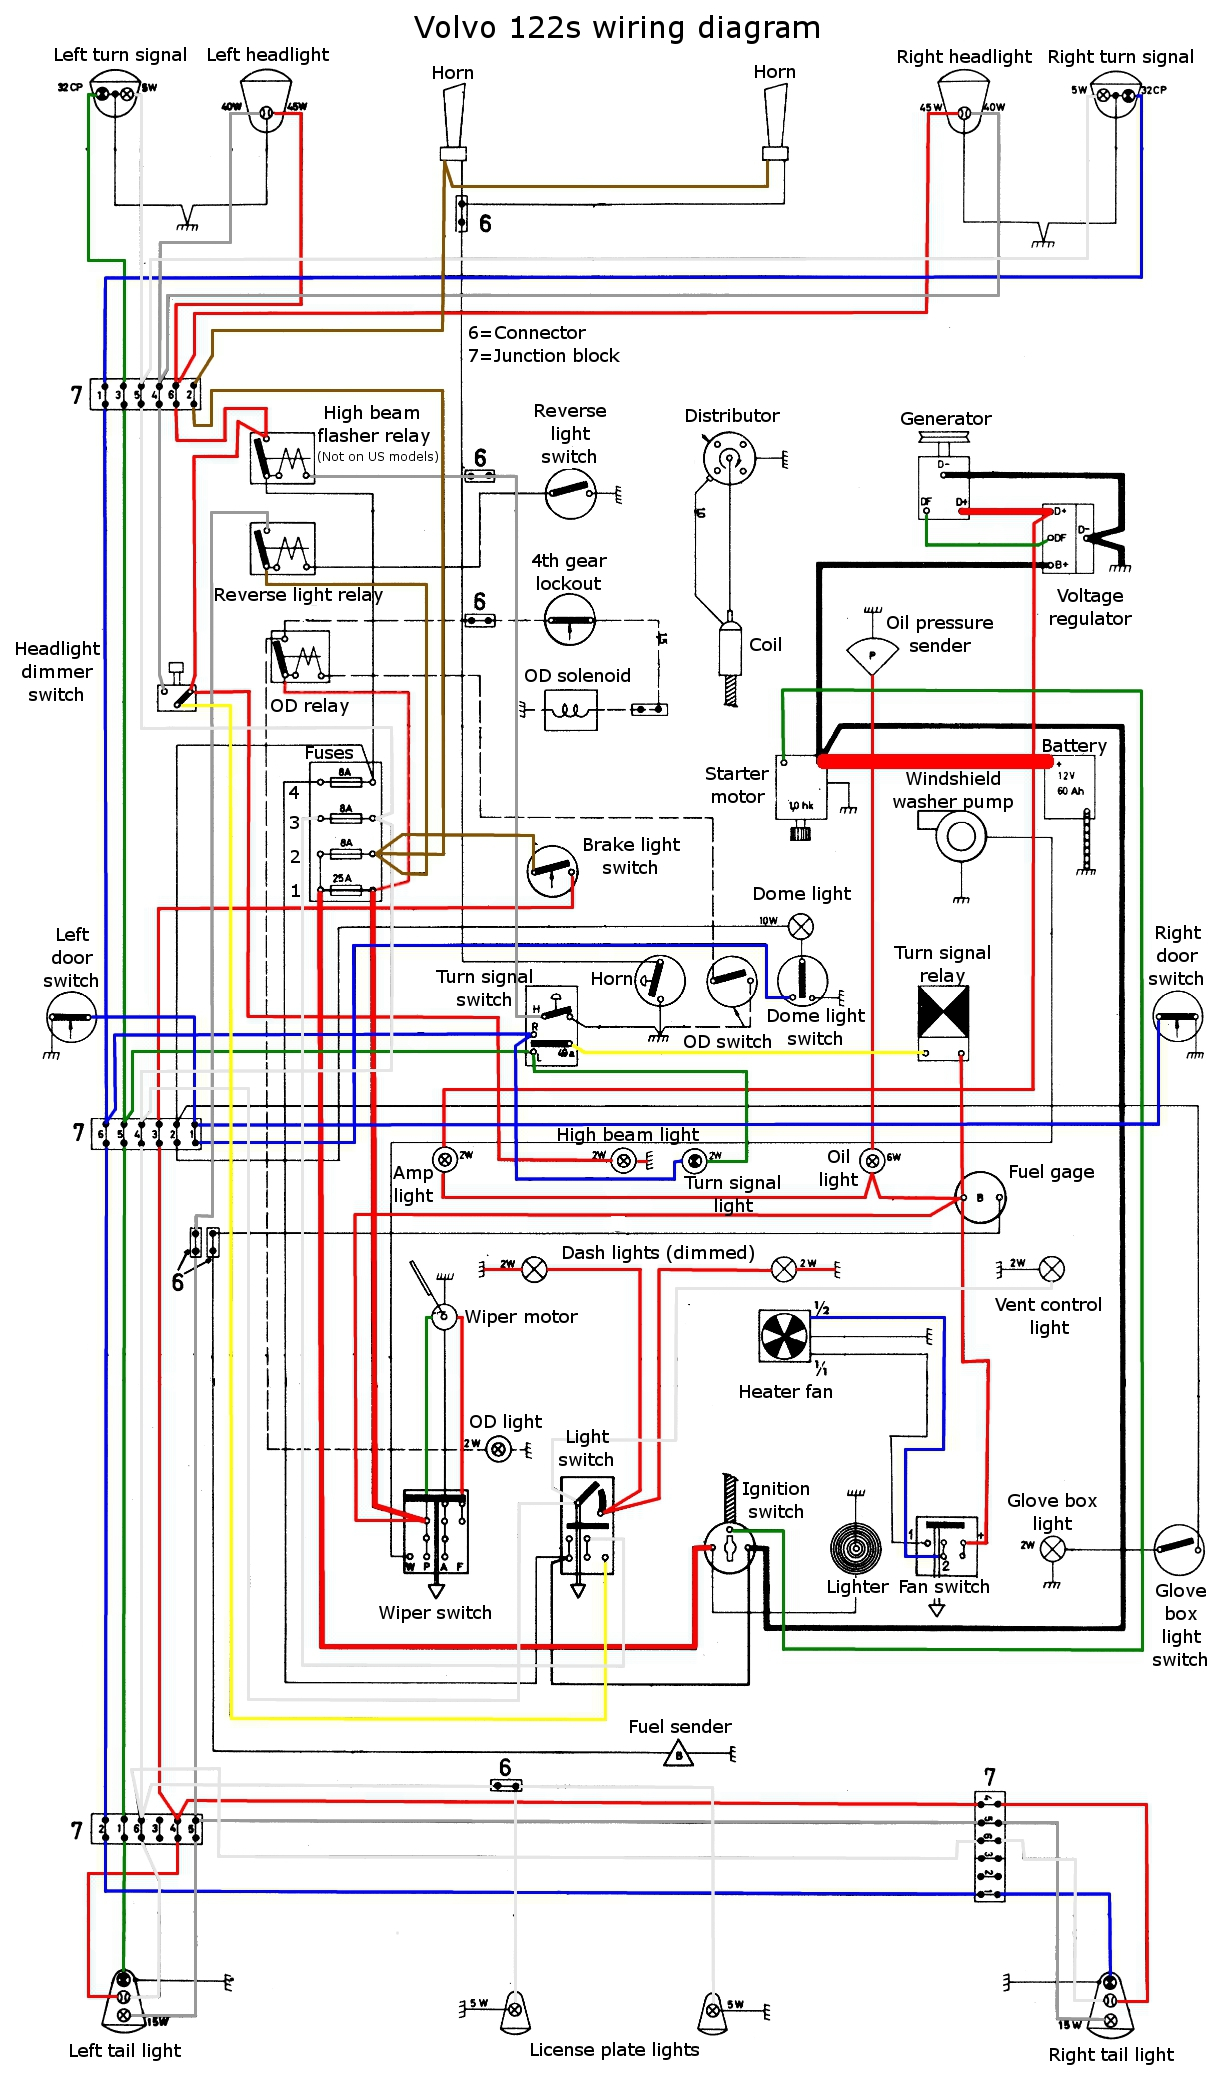 122 wiring diagram color wiring gremlins volvo xc70 wiring diagram at bakdesigns.co